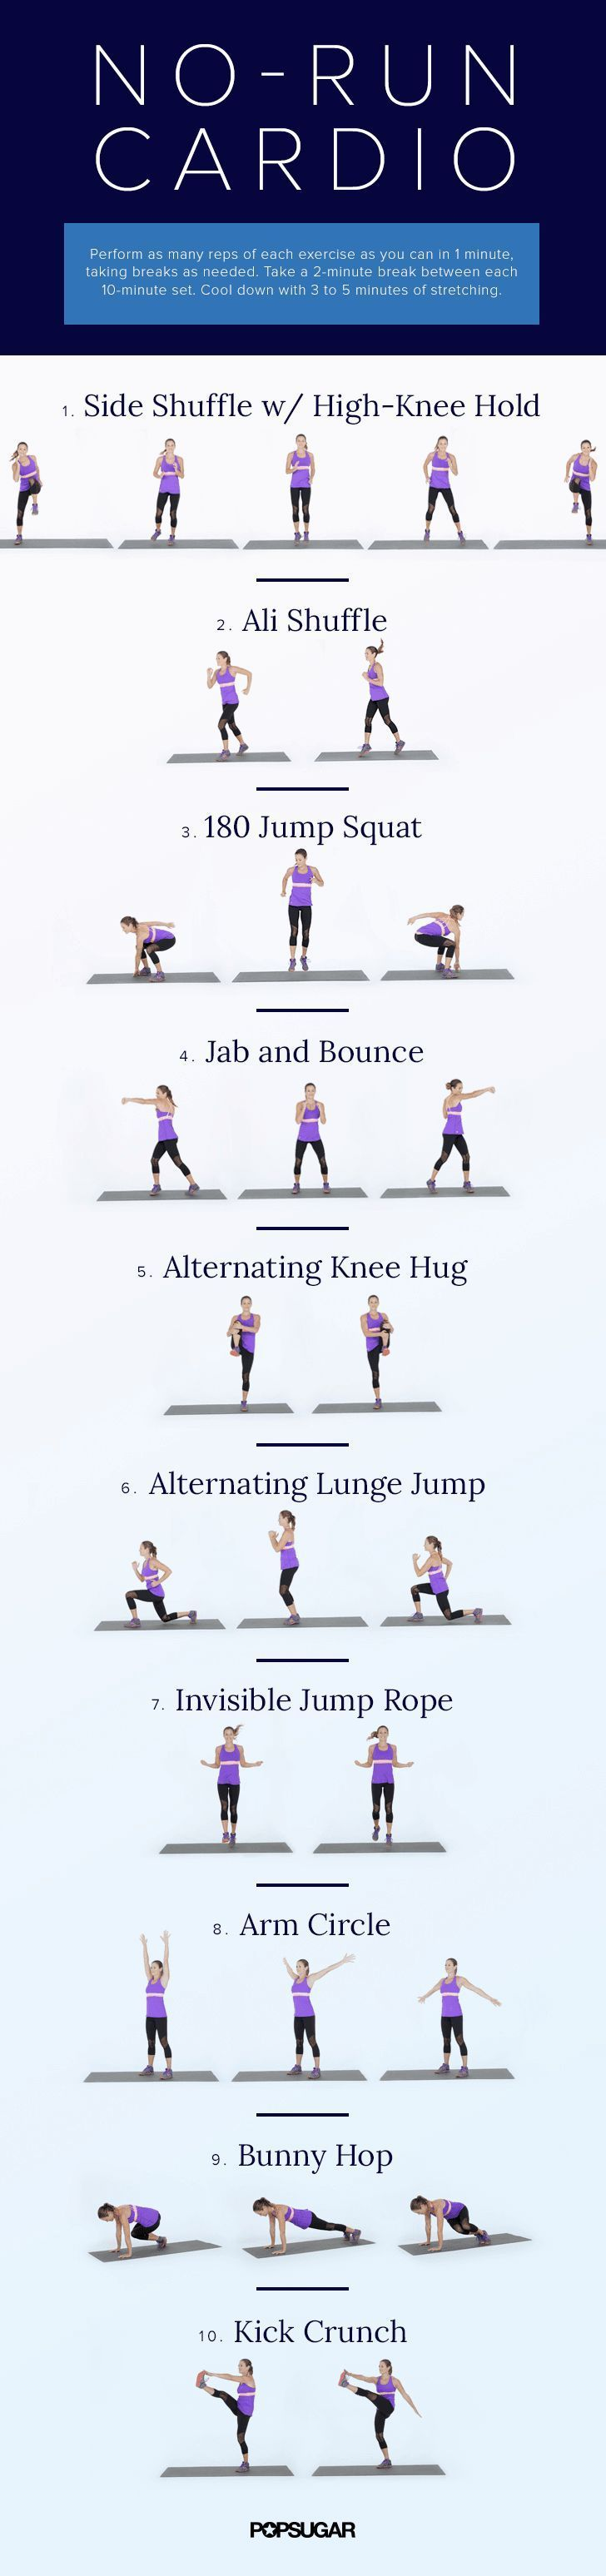 A Calorie-Burning Workout For People Who Hate to Run. And guess what? No treadmill and no equipment needed!